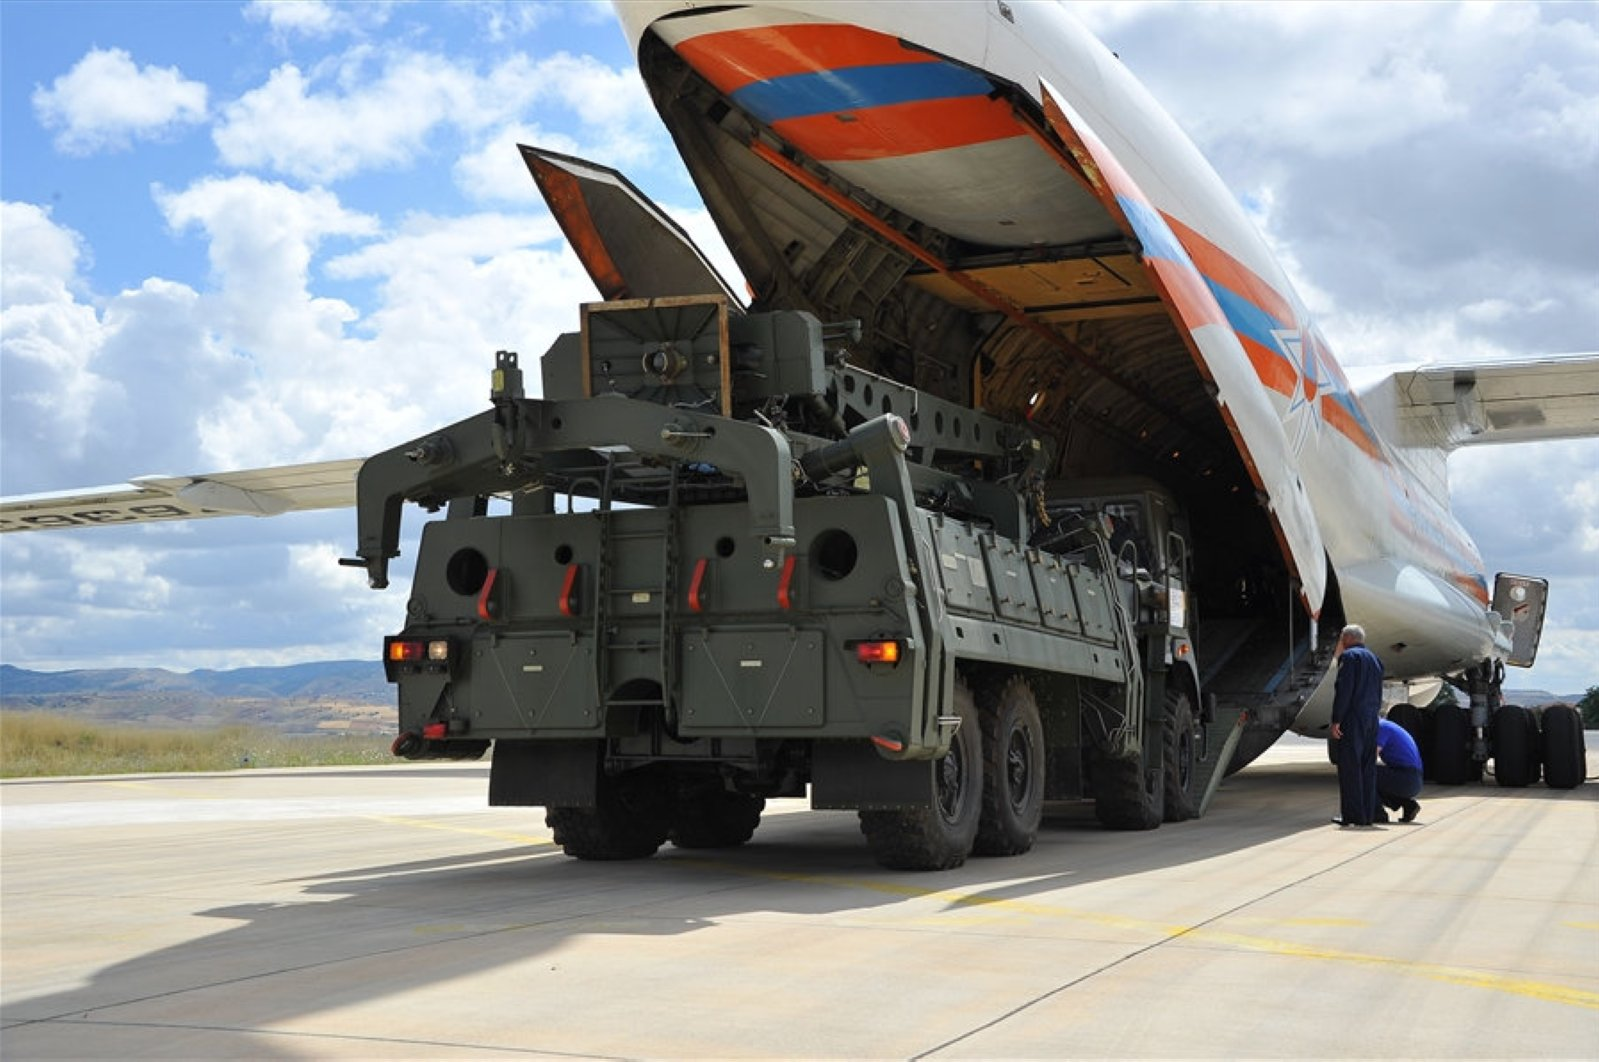 Military vehicles and equipment, parts of the S-400 air defense systems, are unloaded from a Russian transport aircraft, at the Murted Military Airport, Ankara, Turkey, July 12, 2019. (Turkish Defense Ministry via DHA)